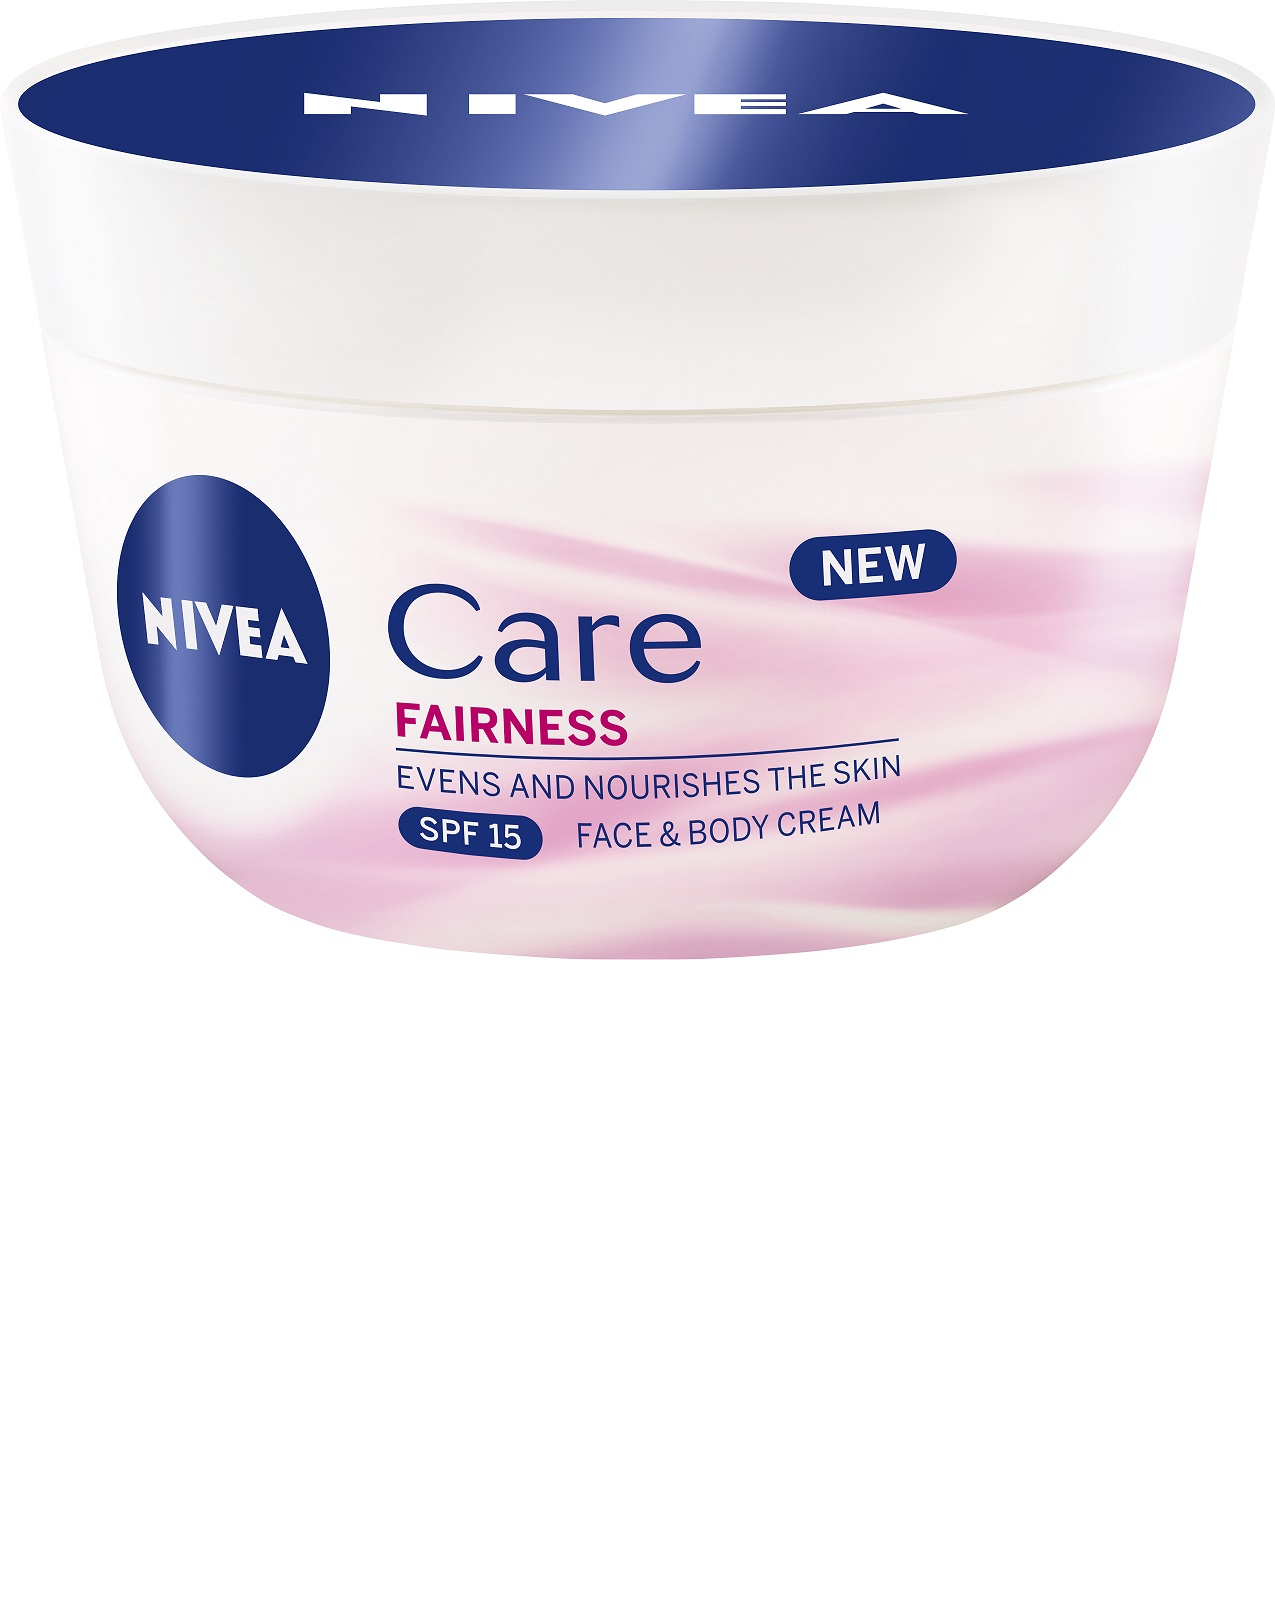 NIVEA put the new Generation of Skin Care Products